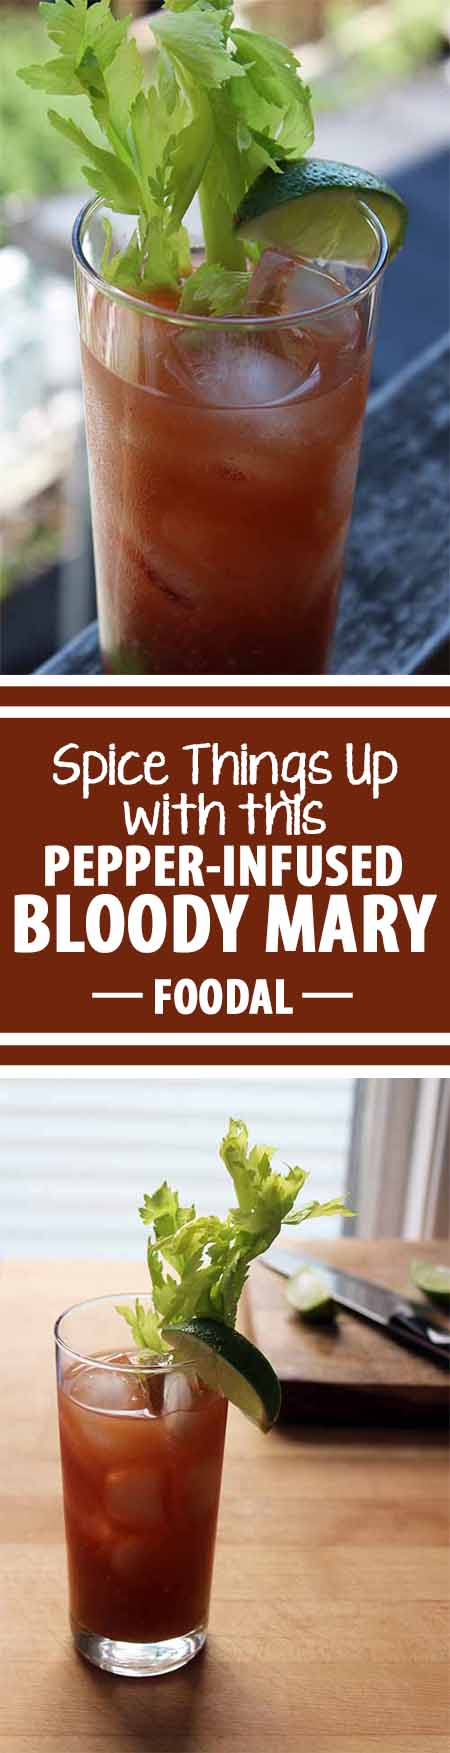 Forget everything you know about the Bloody Mary. Whether the infamous brunch drink is a go-to favorite or not, this recipe will blow your mind. Made with freshly pressed tomato and cucumber juice and spiked with a hot pepper-infused vodka, it is nothing like the thick red cocktail you've had before. Keep reading to find out more: http://foodal.com/drinks-2/alcoholic-beverages/pepper-infused-bloody-mary/